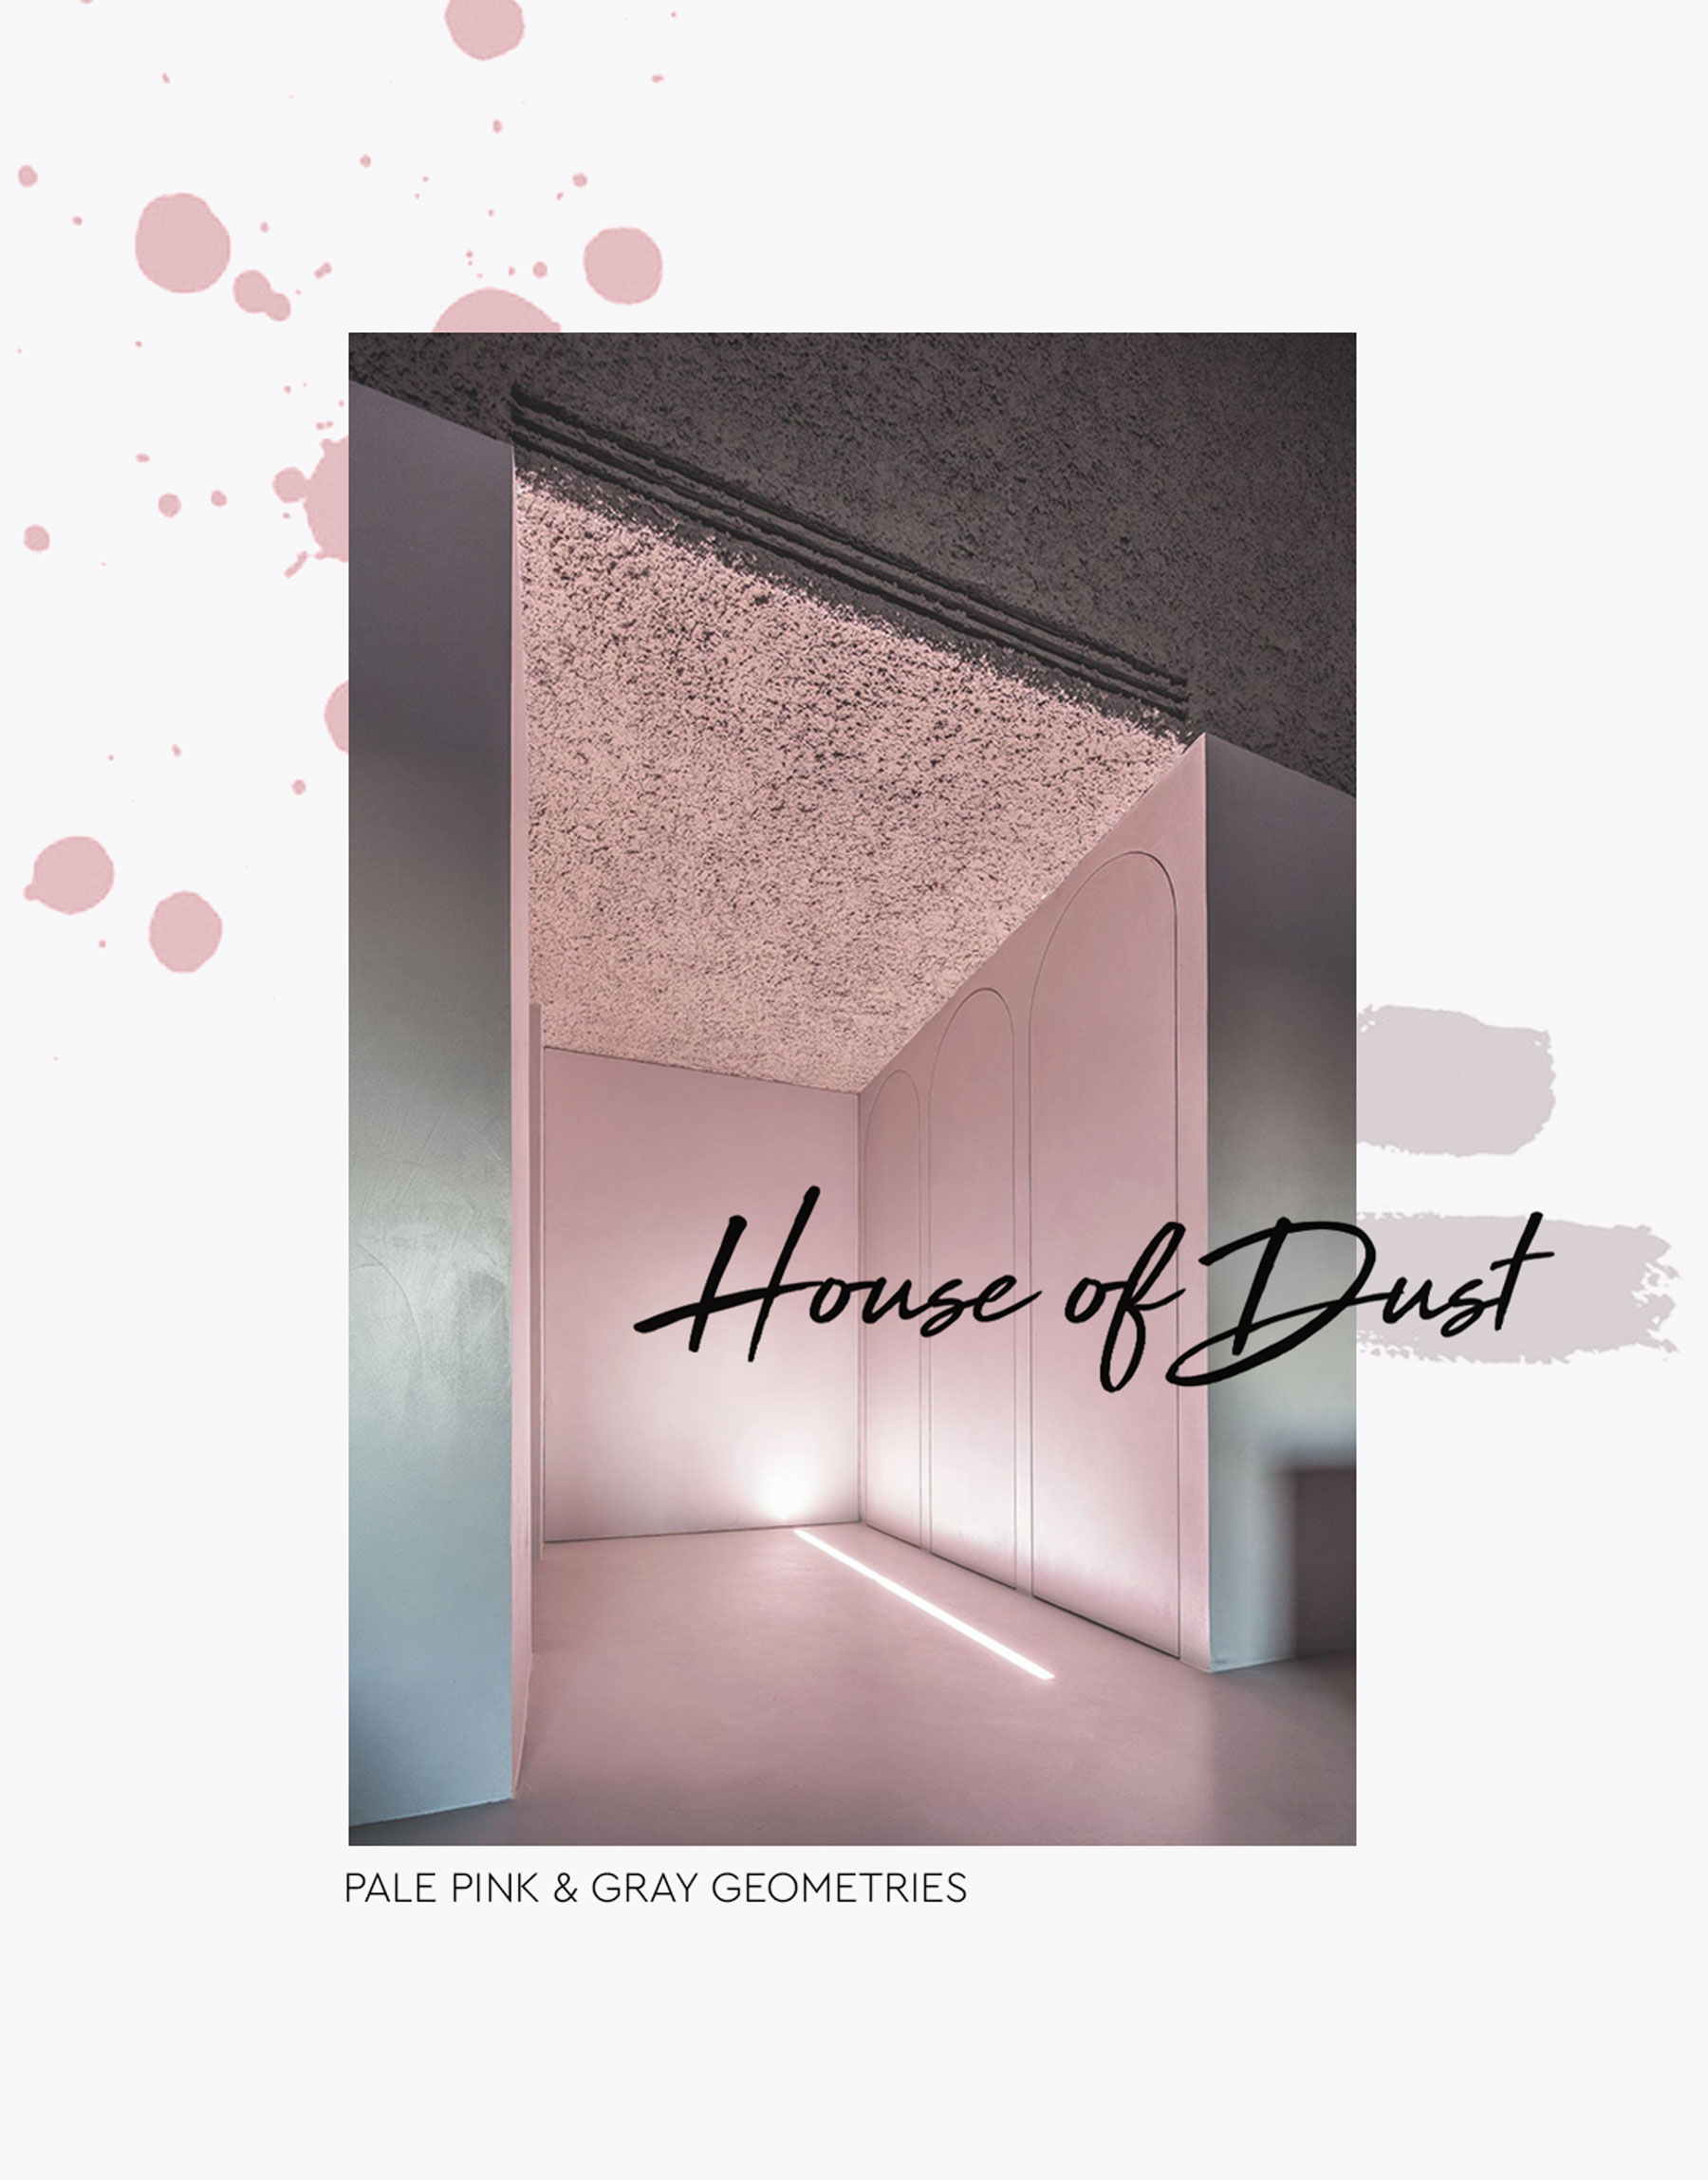 House of Dust: pale pink & gray geometries